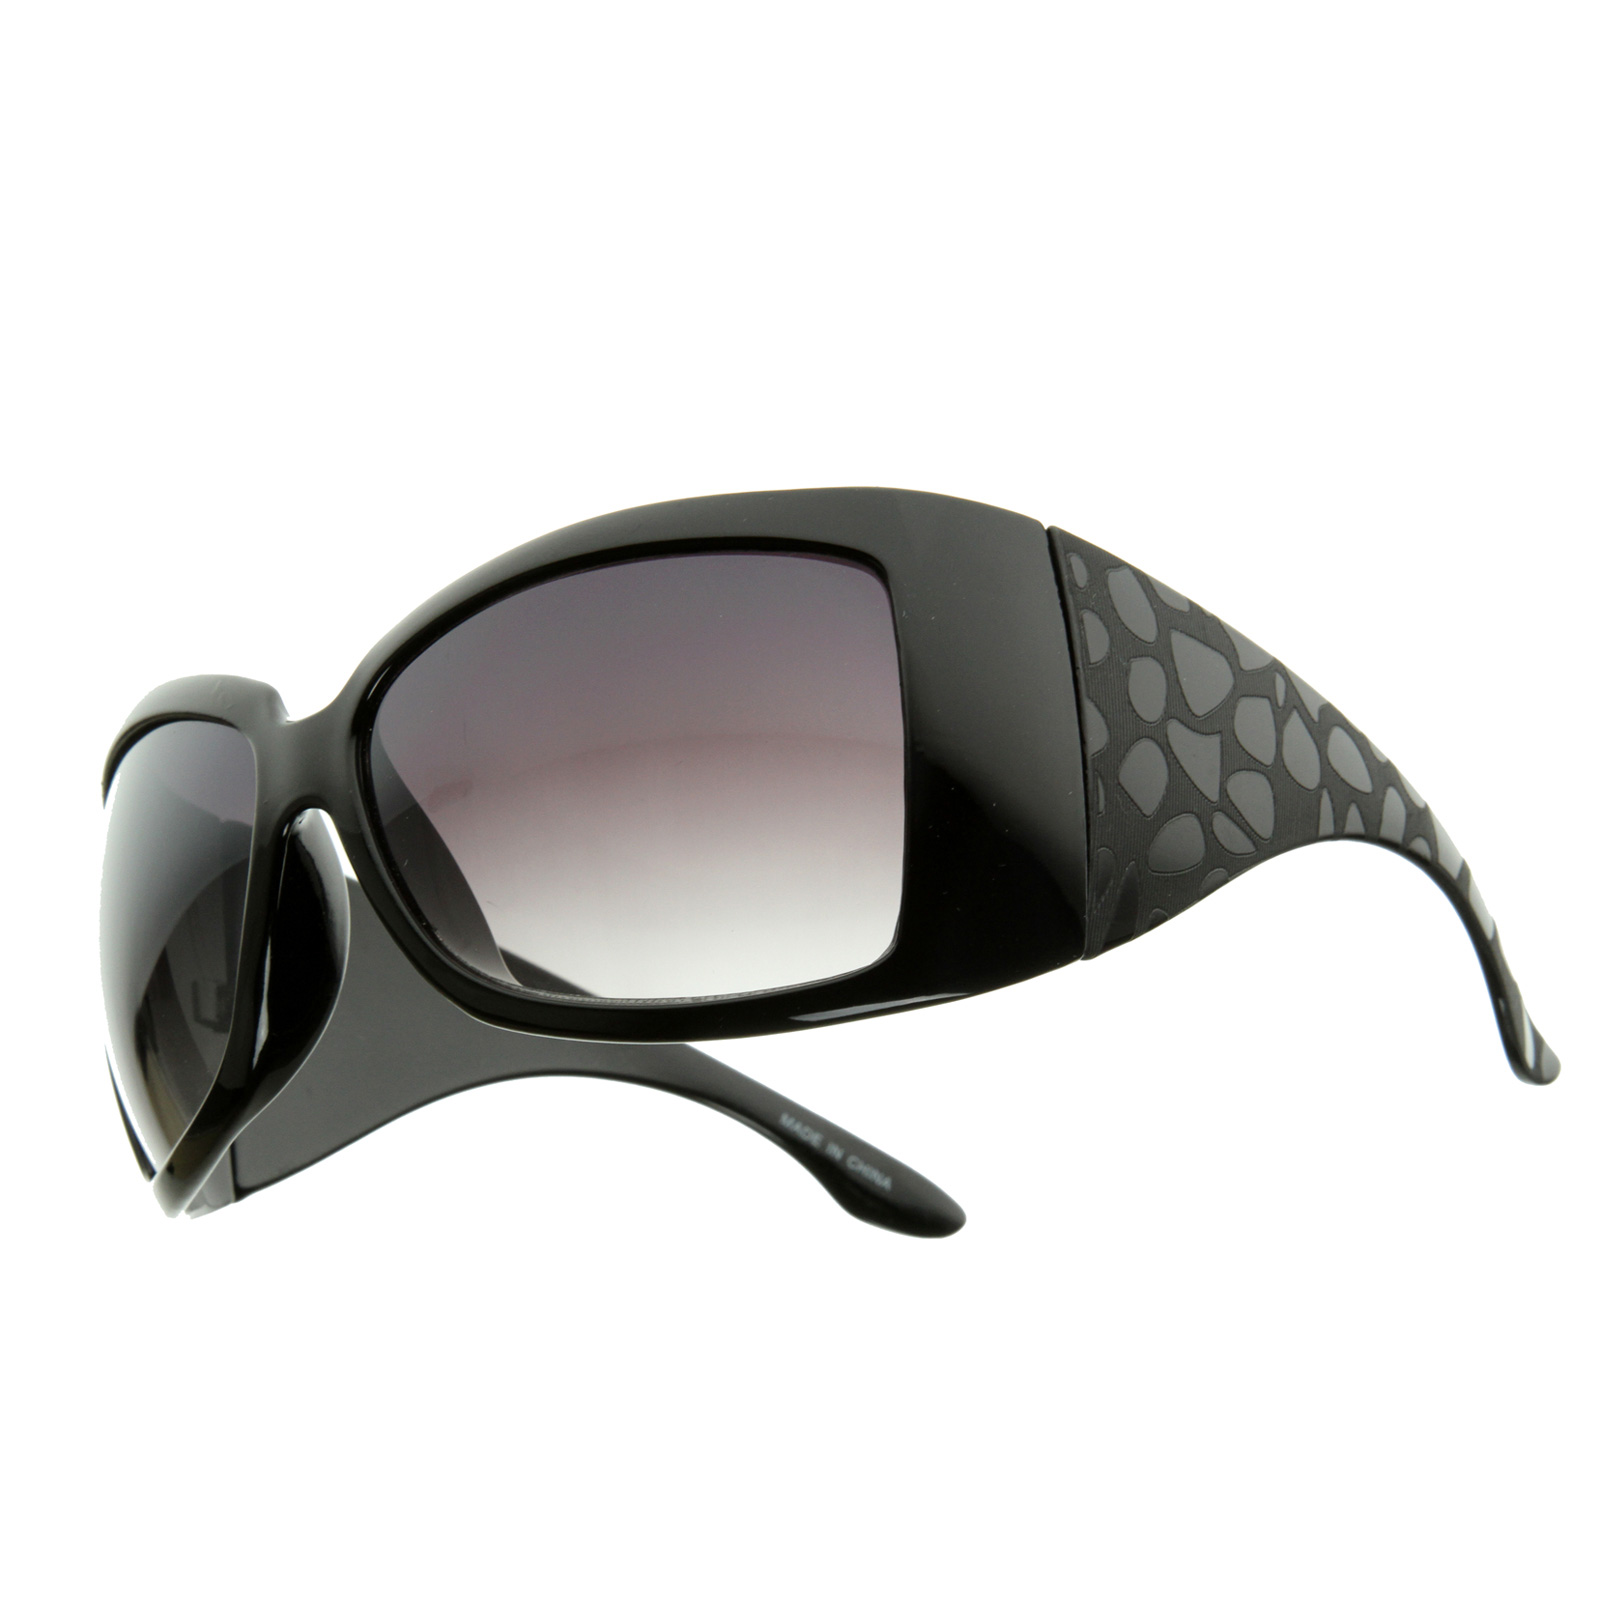 ray bans sunglasses wayfarer 089c  Details about Discount Designer Wrap Around Shield Sunglasses 8305  ,Fake Ray Ban